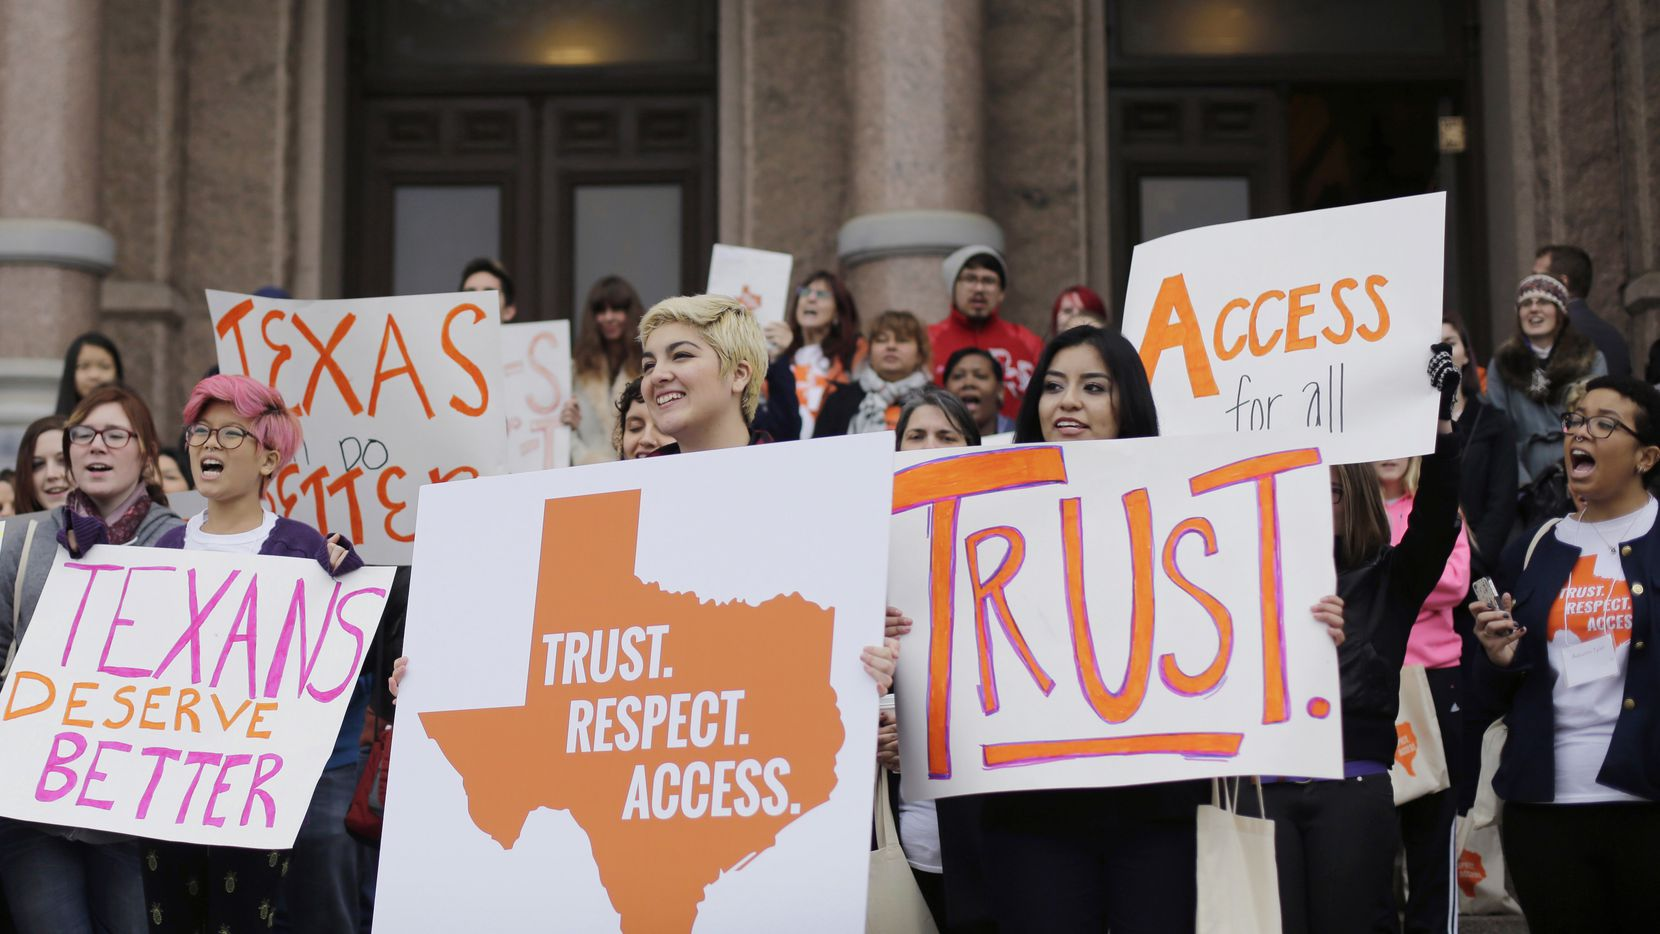 Women in Texas have been battling the erosion of abortion rights for almost two decades. This 2015 rally by students and abortion rights activists on the steps of the Texas Capitol in Austin protest previous restrictions put in place by the state Legislature.